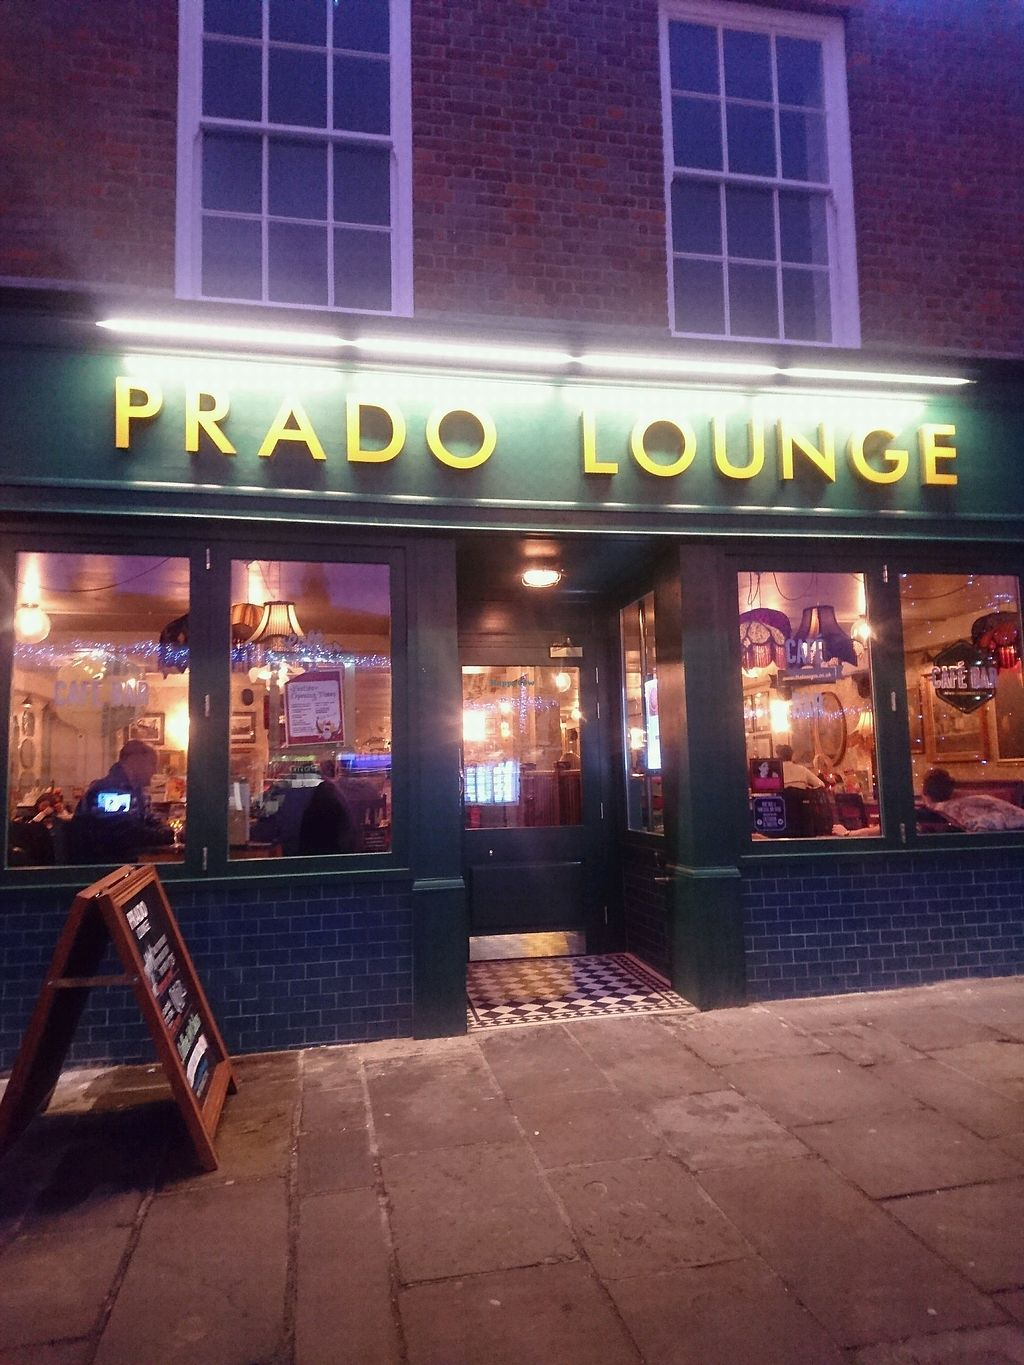 """Photo of Prado Lounge  by <a href=""""/members/profile/EmmaIn86"""">EmmaIn86</a> <br/>Outside <br/> December 24, 2017  - <a href='/contact/abuse/image/107888/338763'>Report</a>"""